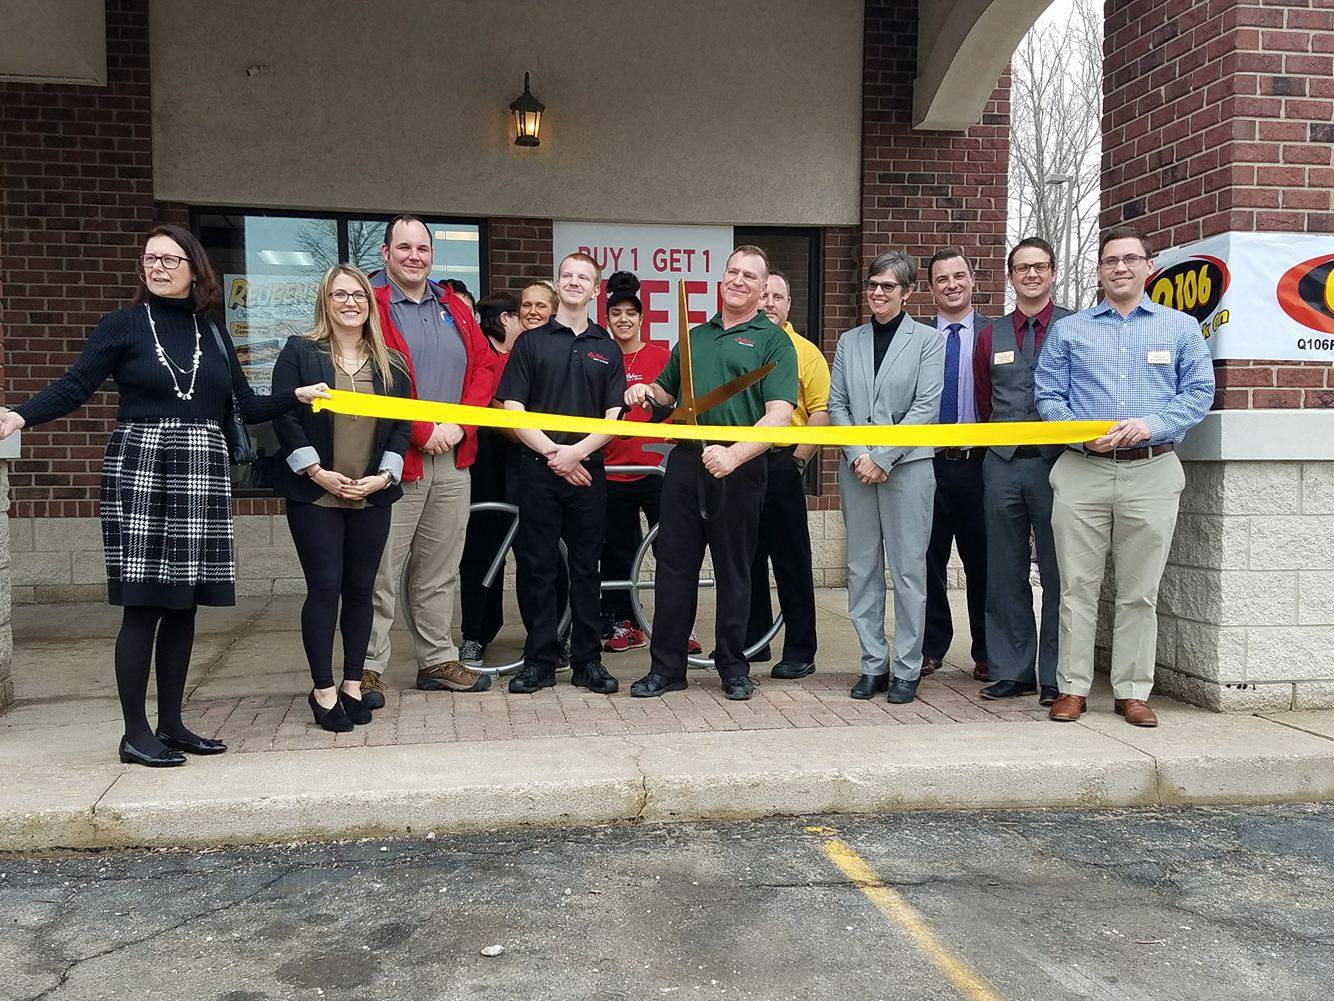 Two Local Businesses Have Grand Opening At New Location